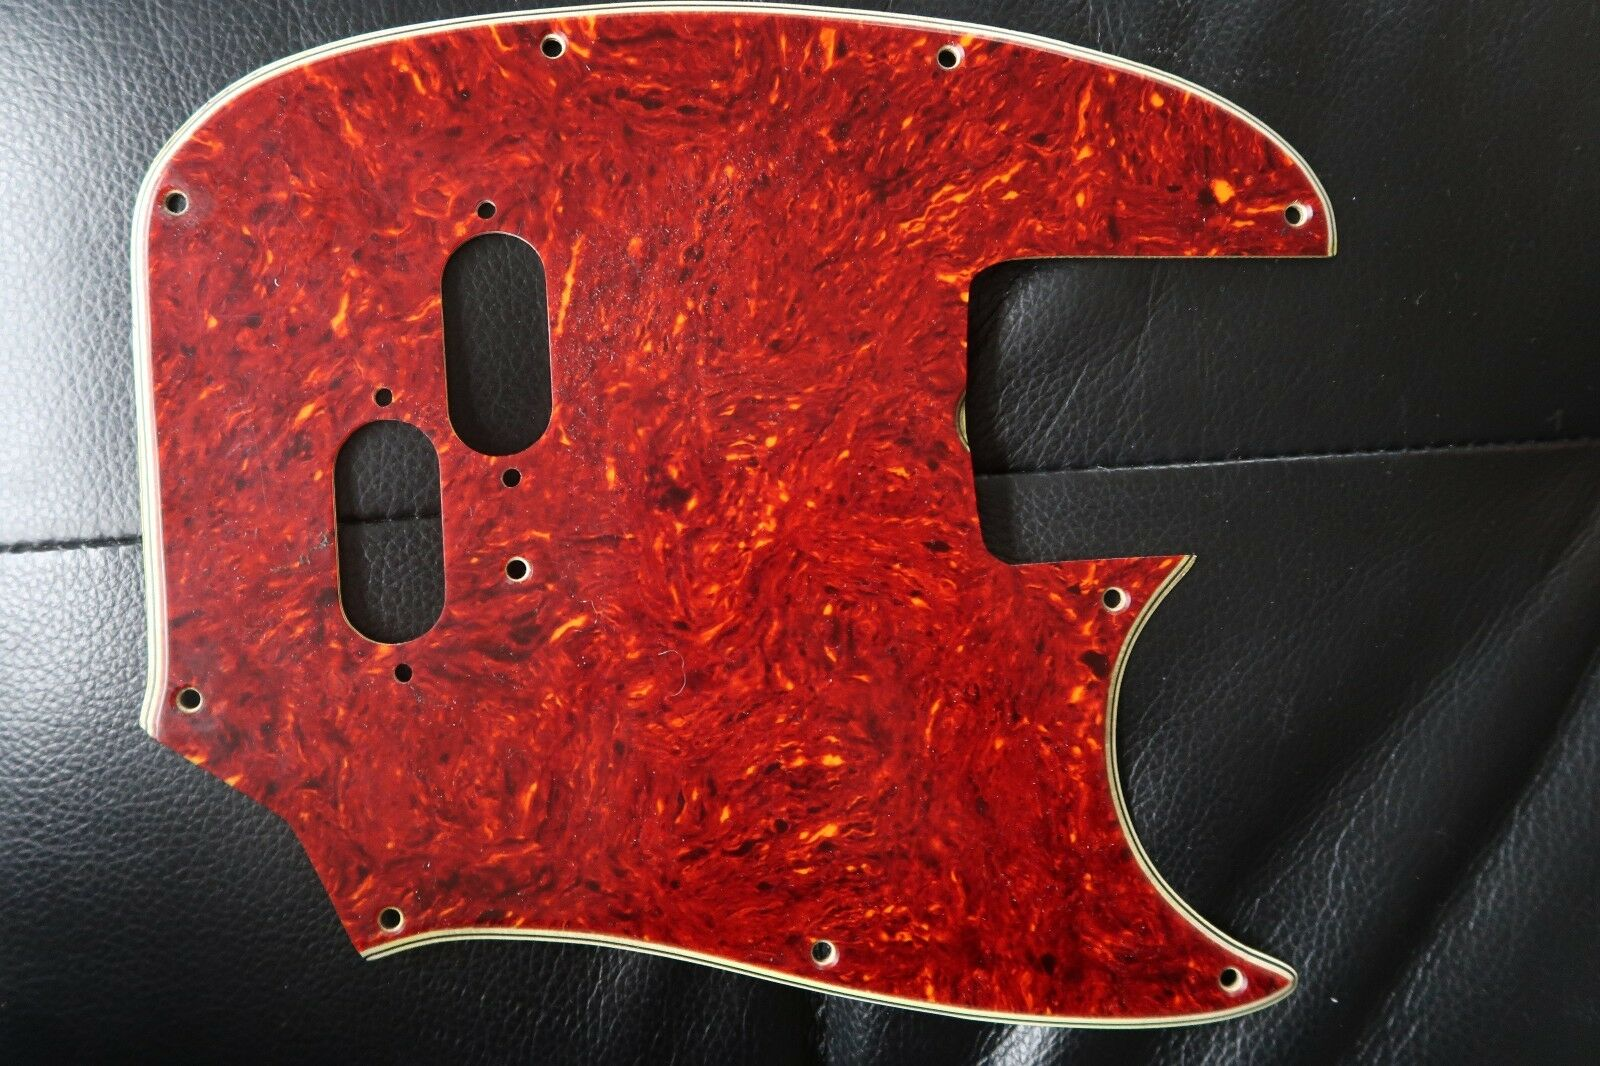 60's 70's Fender Mustang Bass Celluloid Pickguard  tortoise Nitrate USA Vintage